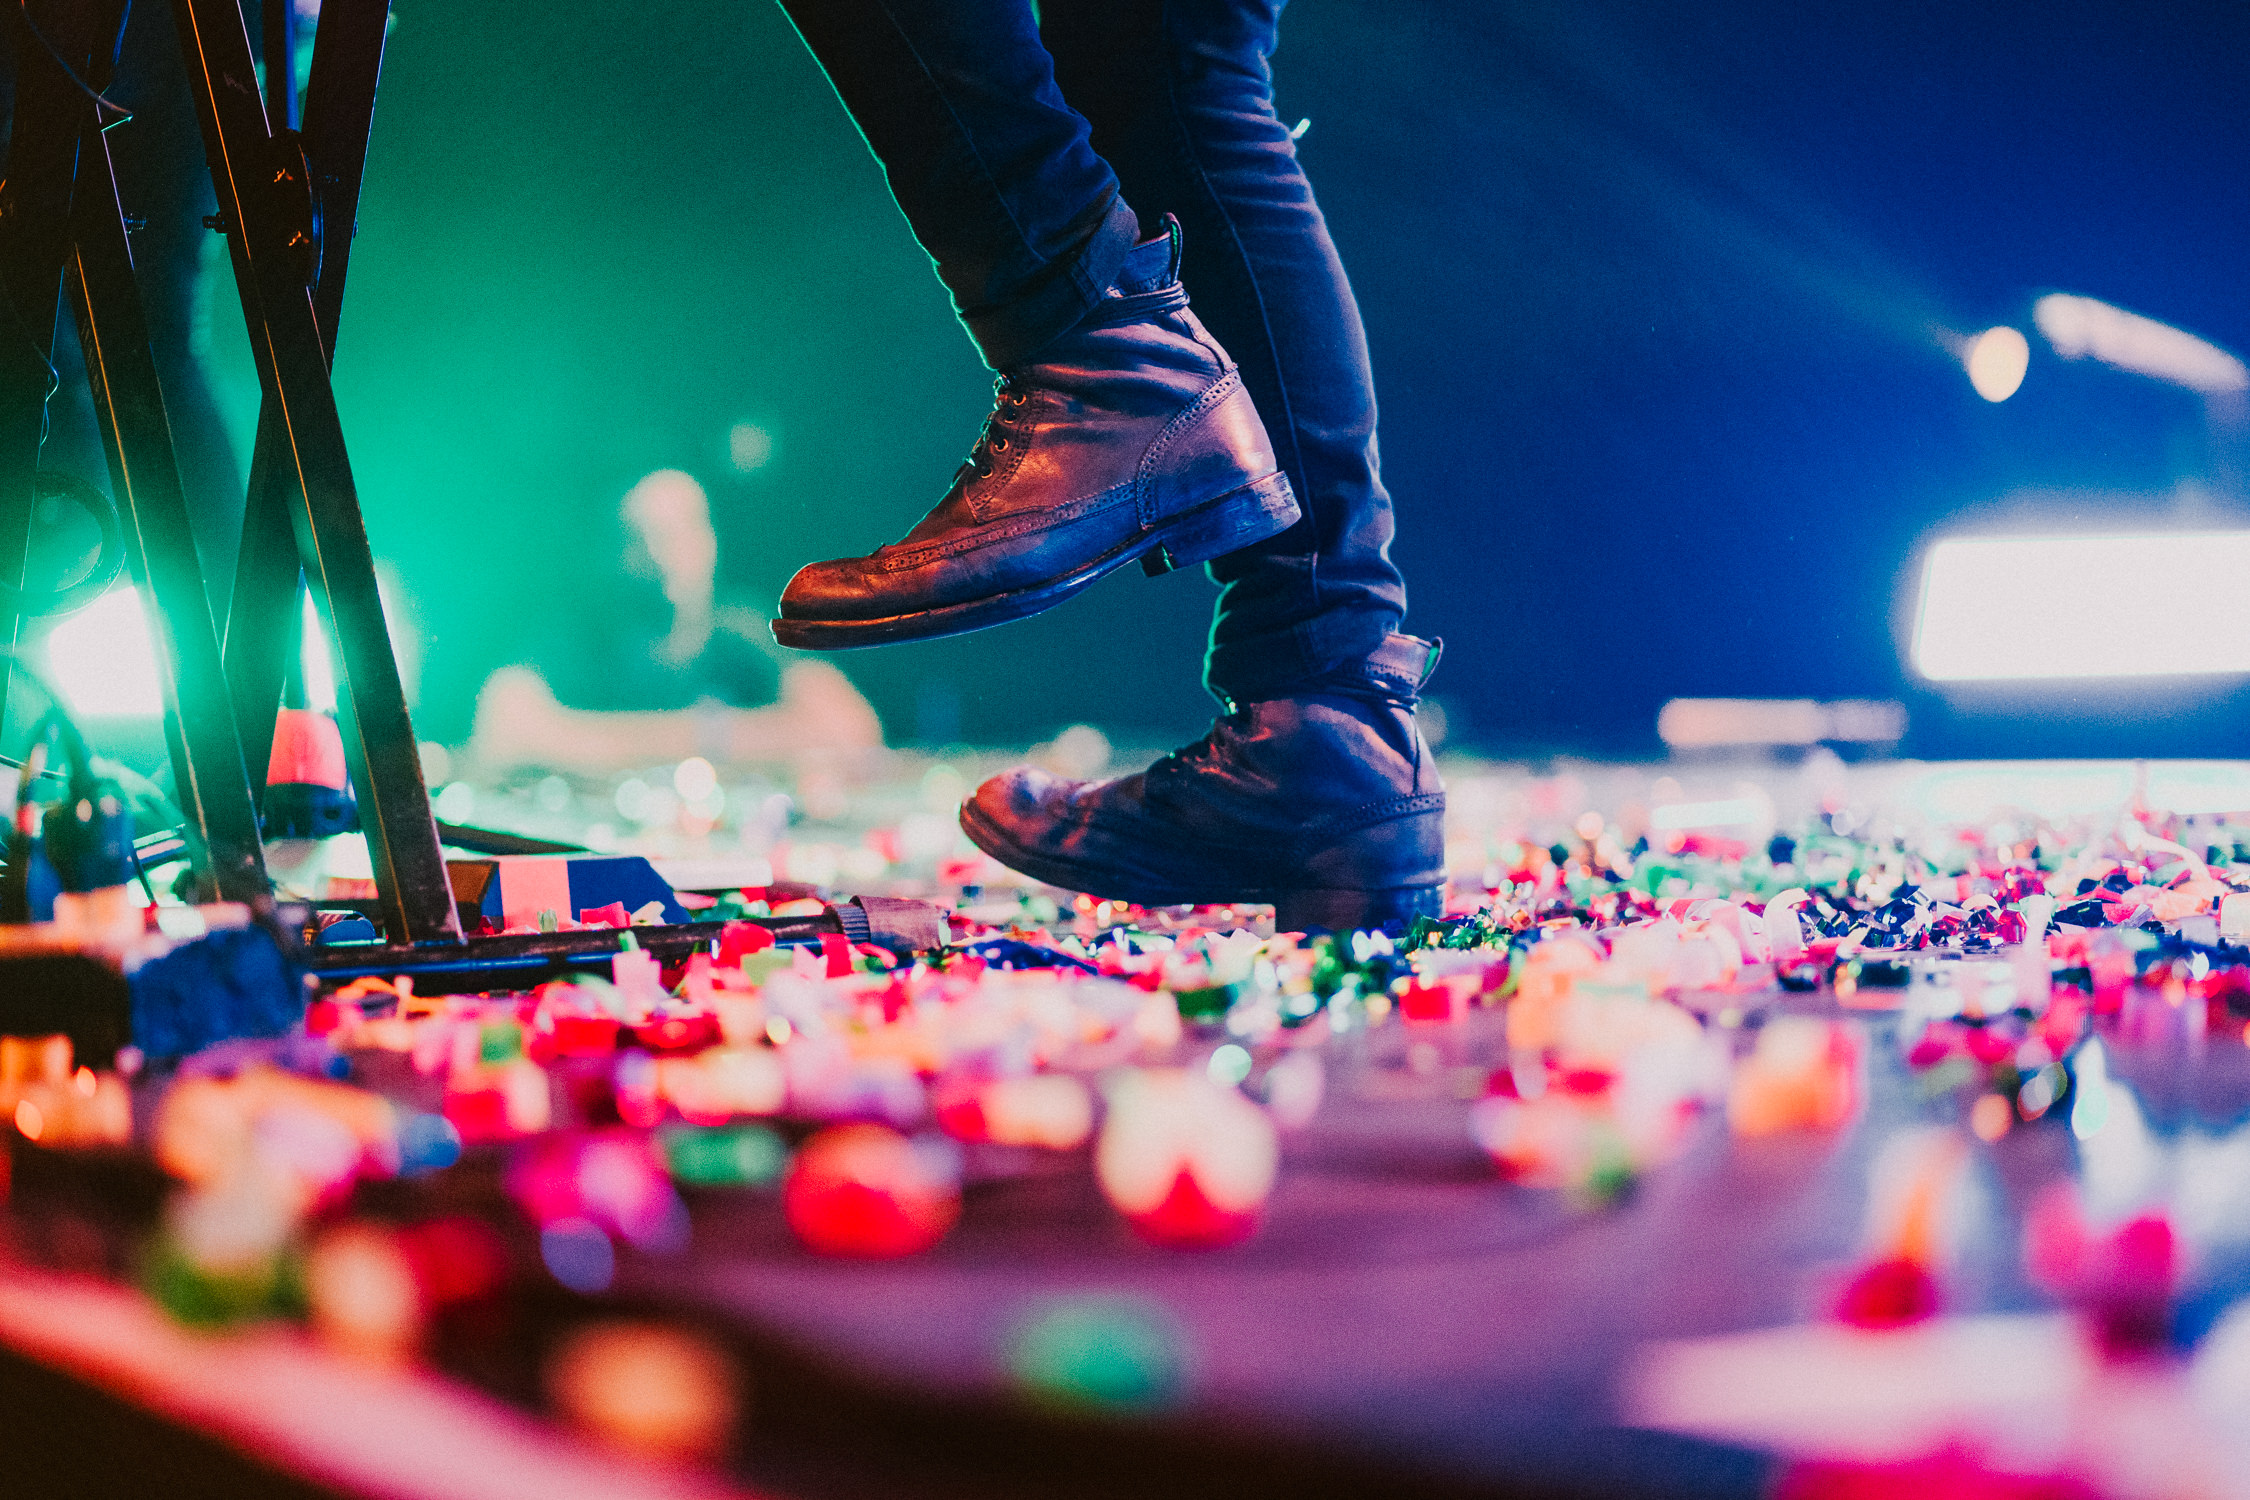 confetti-on-stage-concert-AnnaLeeMedia